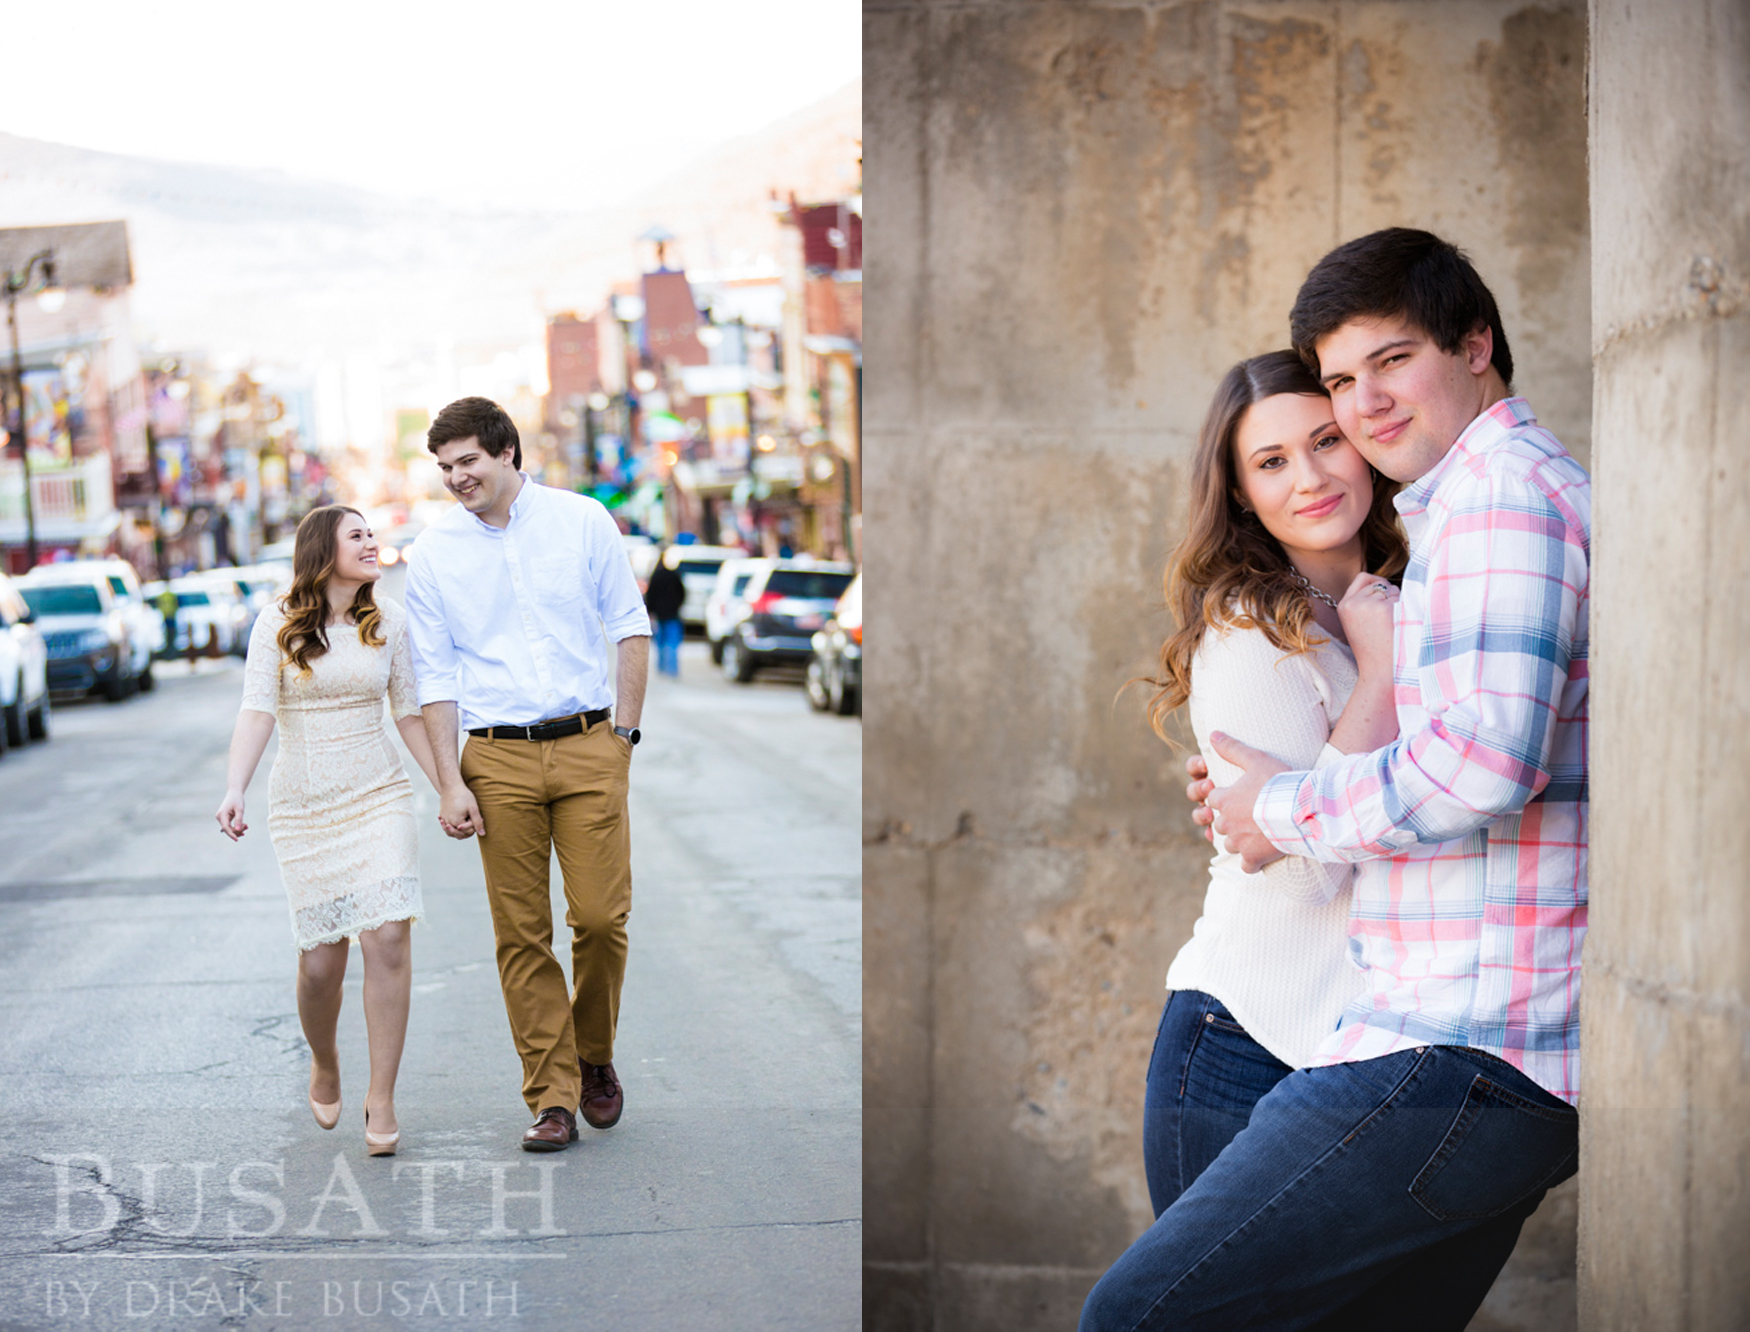 Fortner Engagements